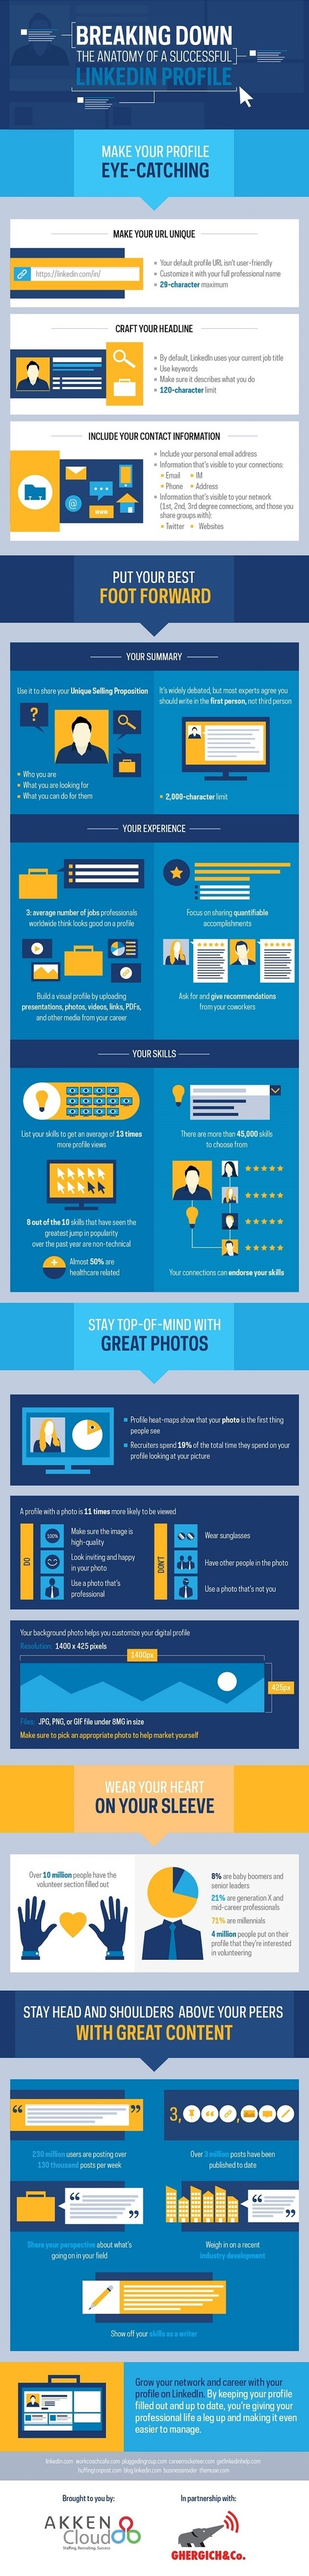 The Anatomy of a Successful LinkedIn Profile #Infographic | Design, social media and web resources | Scoop.it